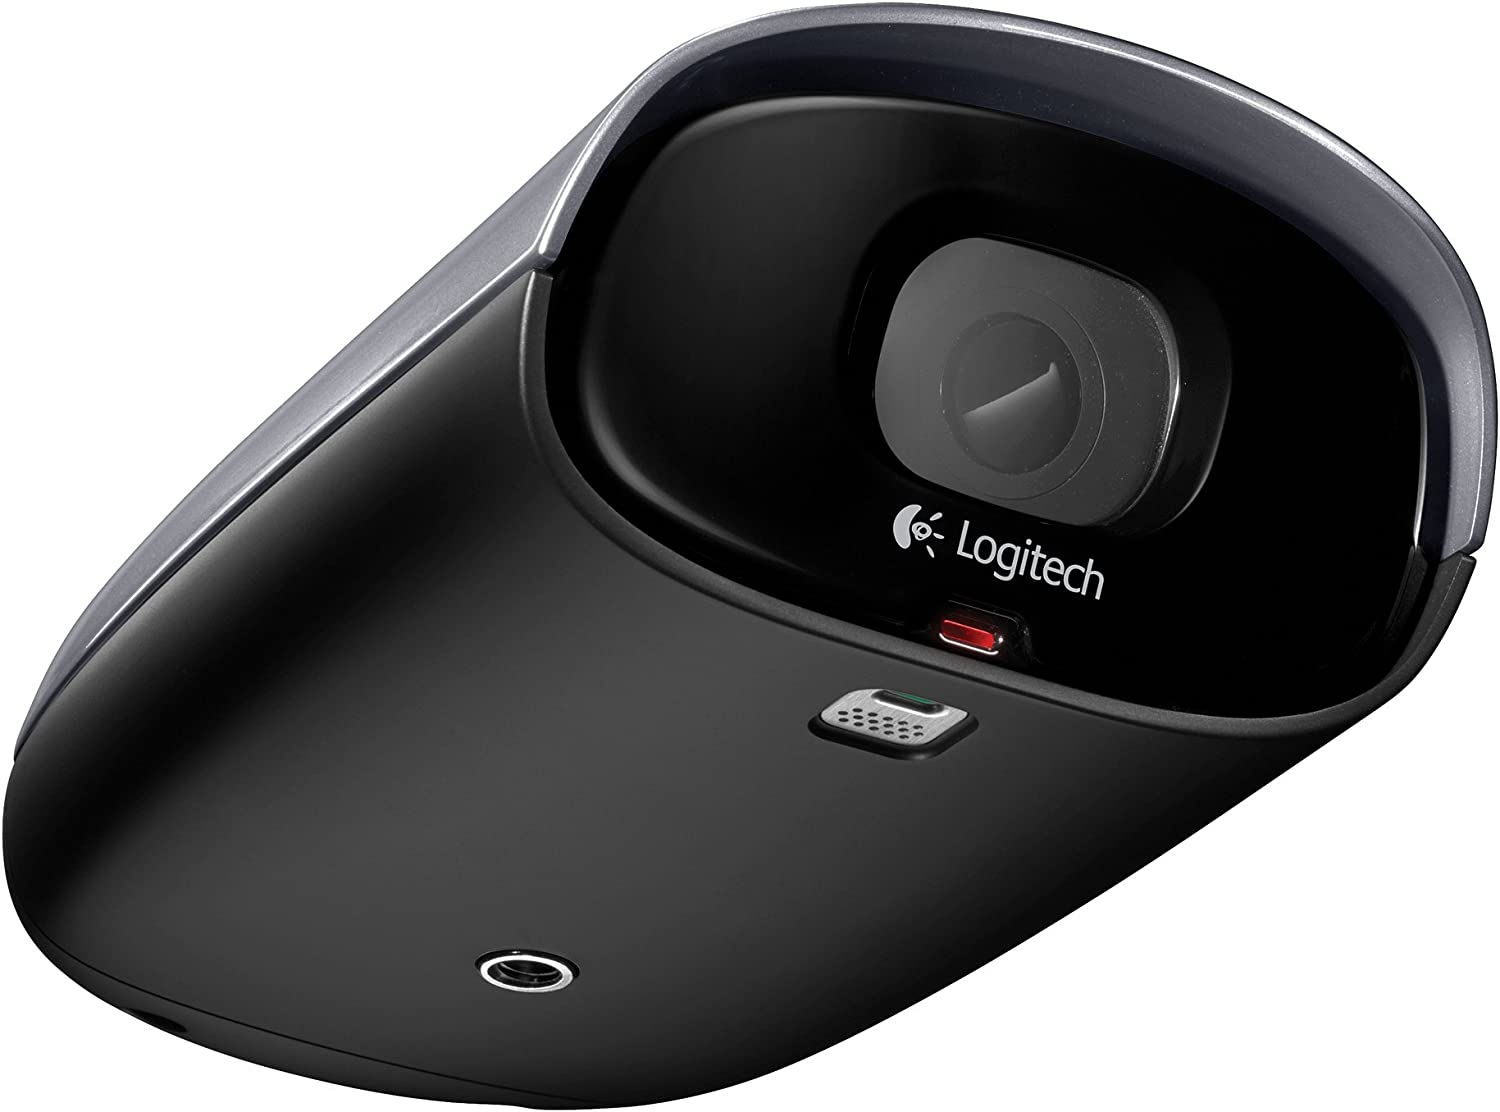 Logitech Alert 750e Outdoor Master - Night Vision Security System